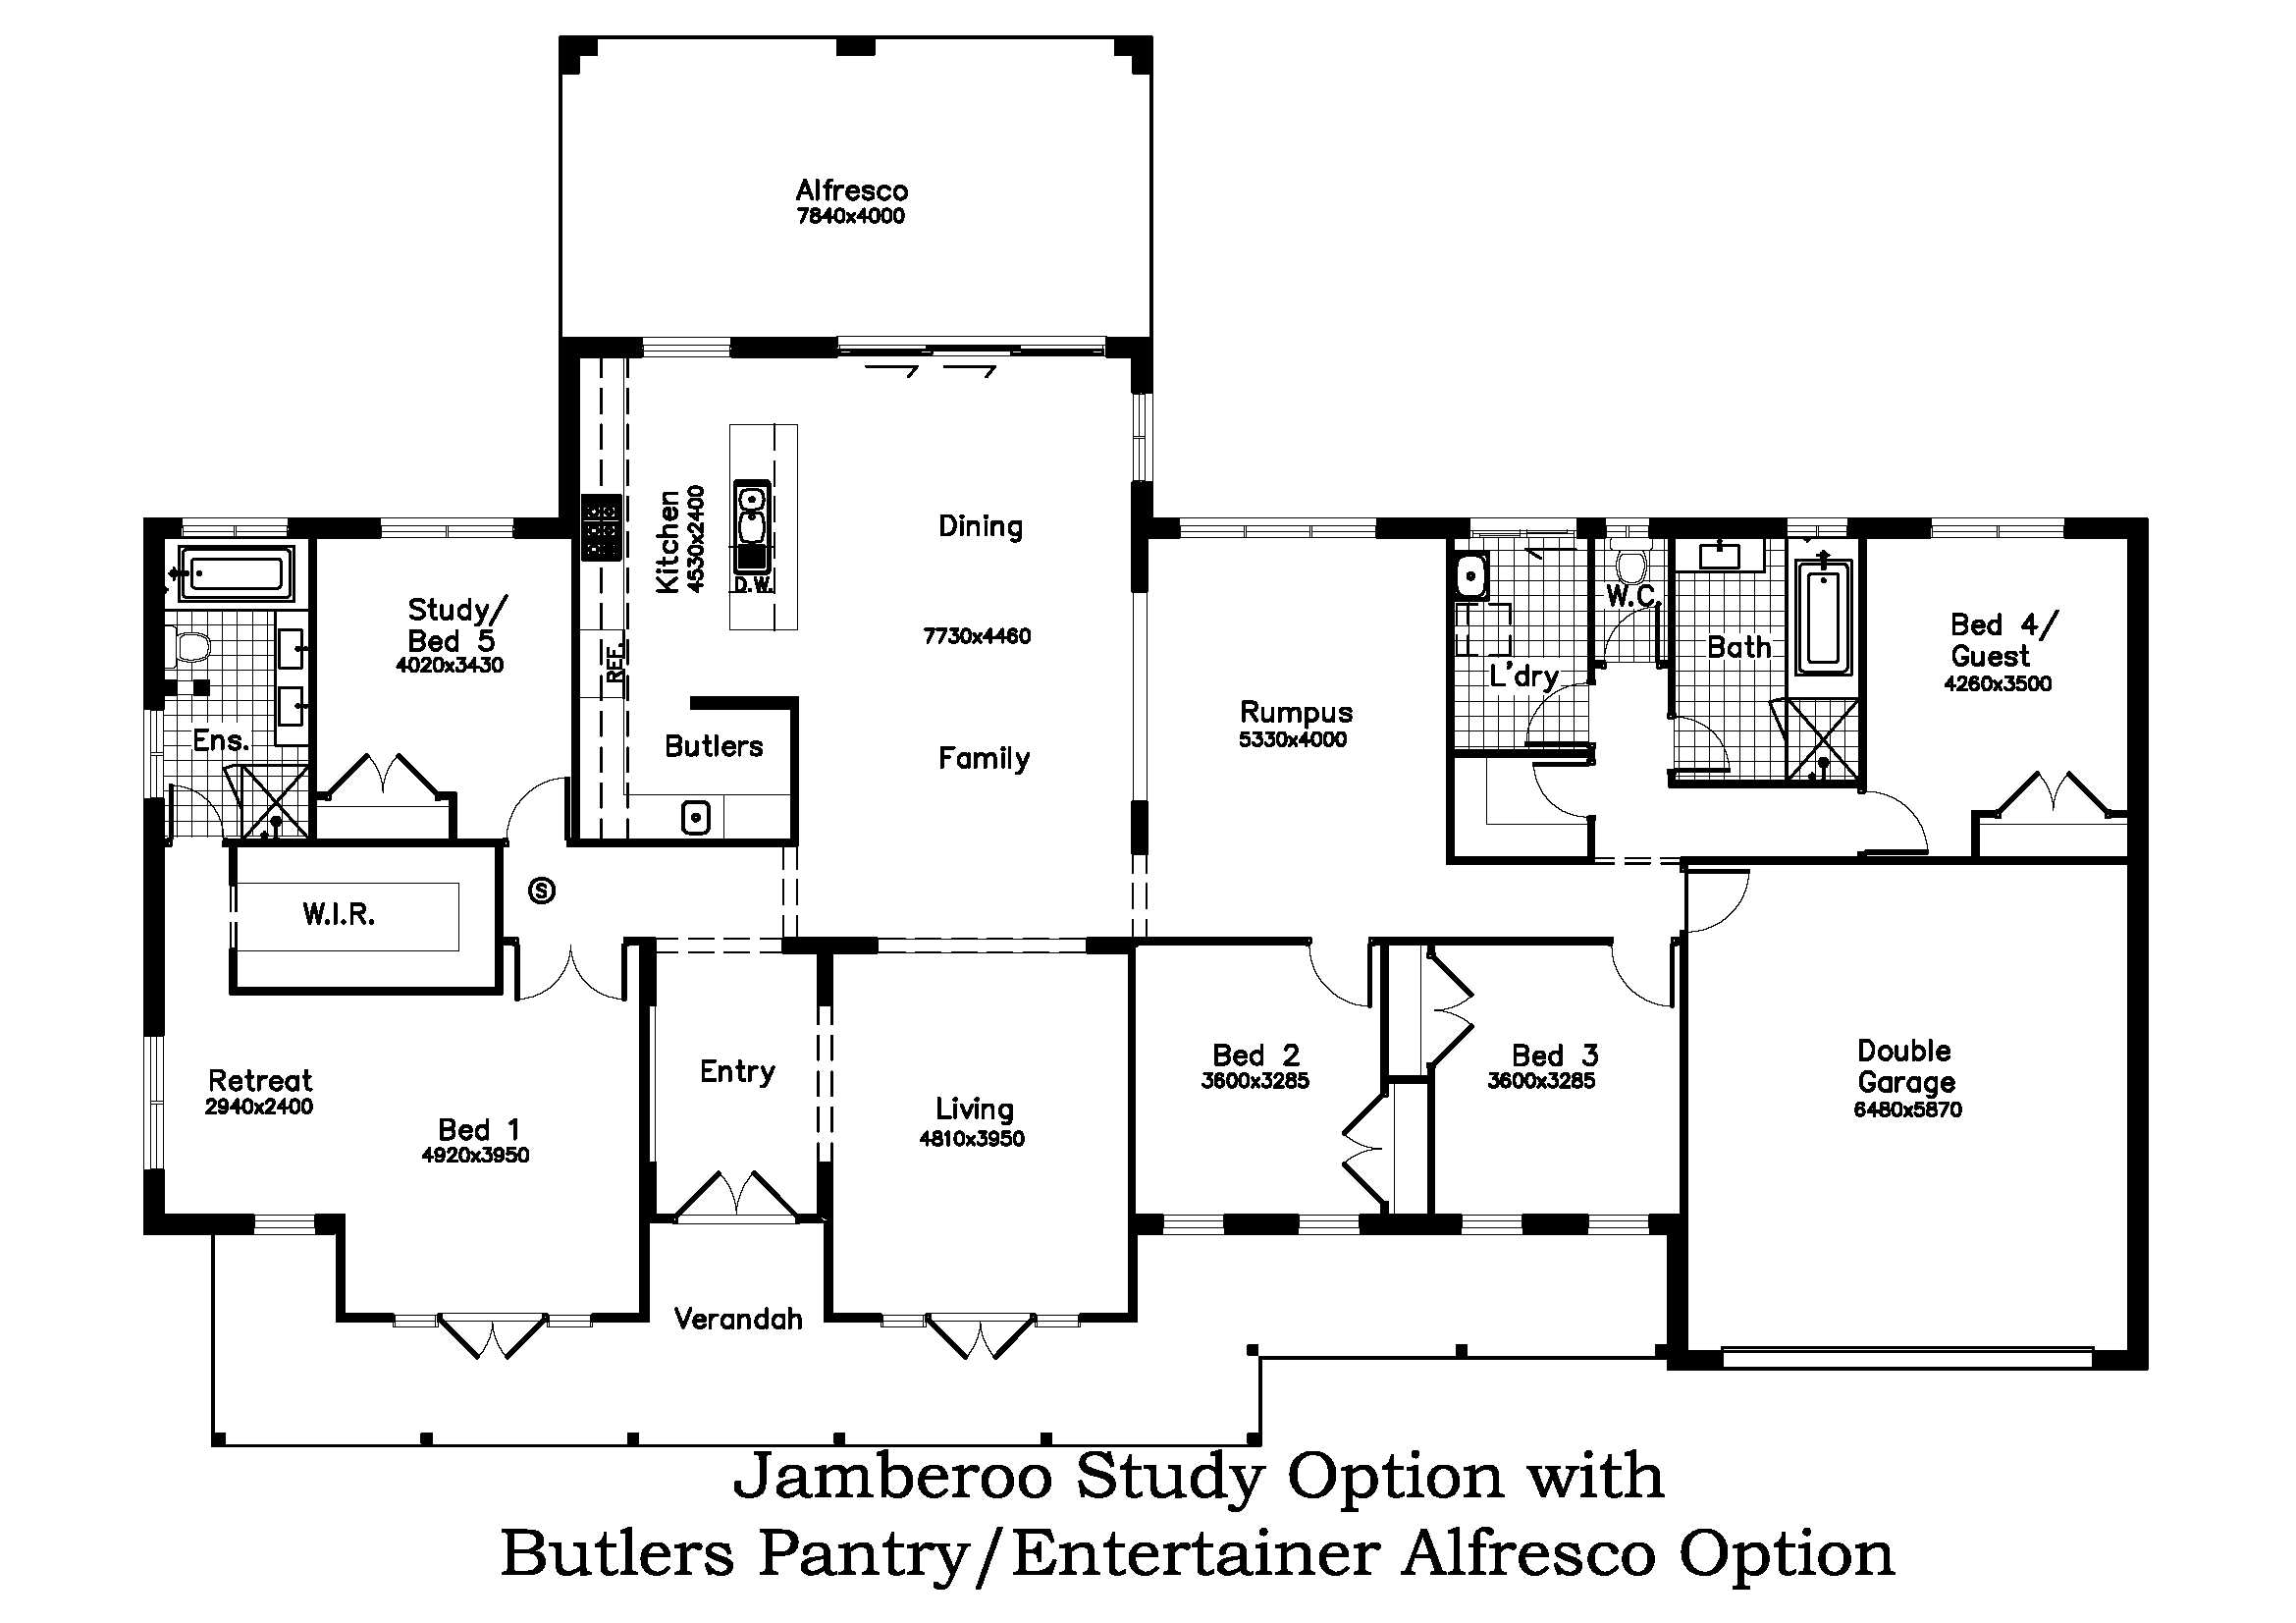 Study Option with Butlers Pantry/Entertainer Alfresco